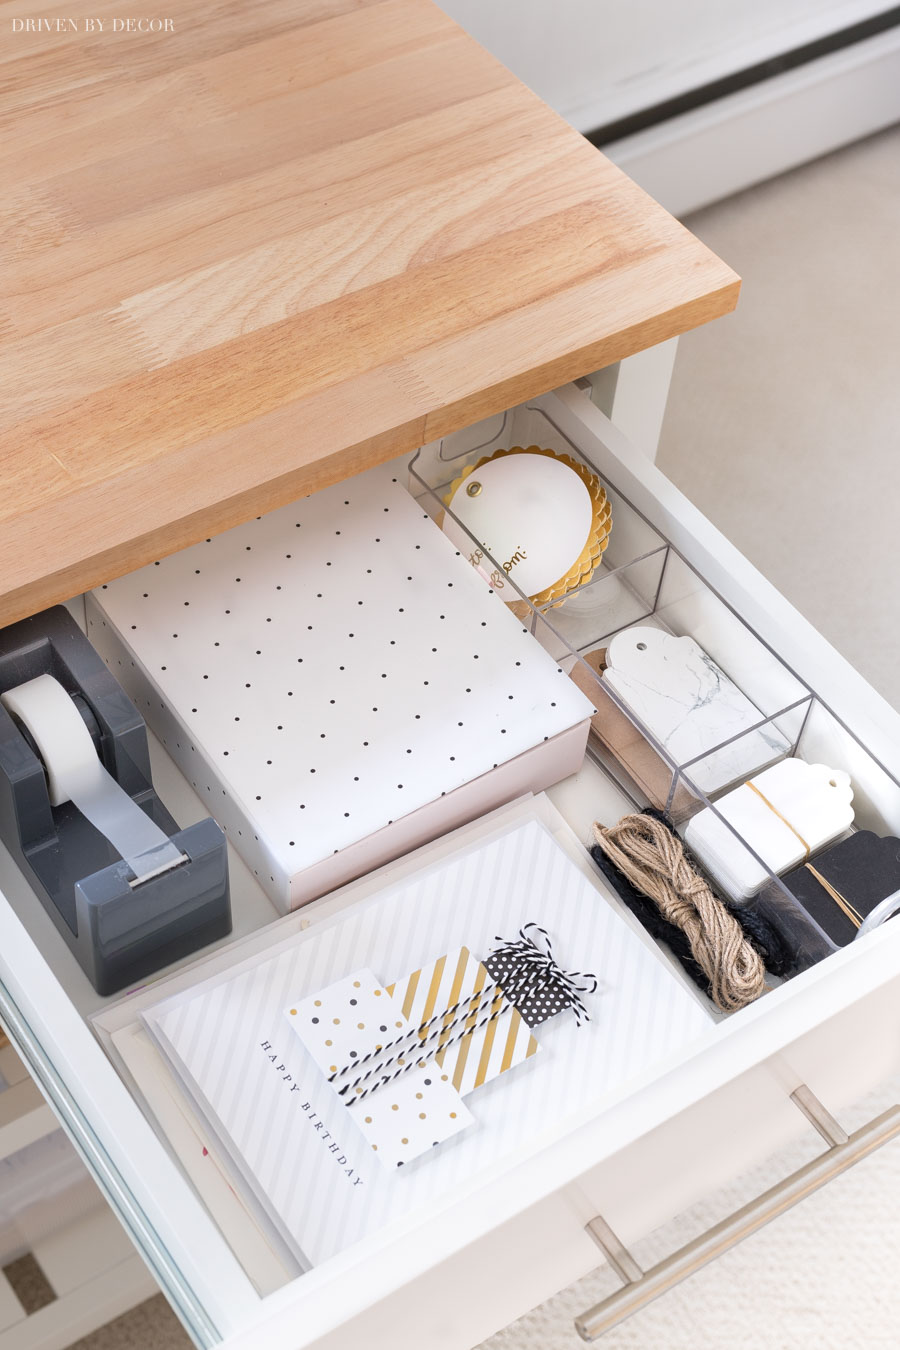 Such a clever and useful gift wrapping station! Love that it has drawers for tape, cards, and tags!